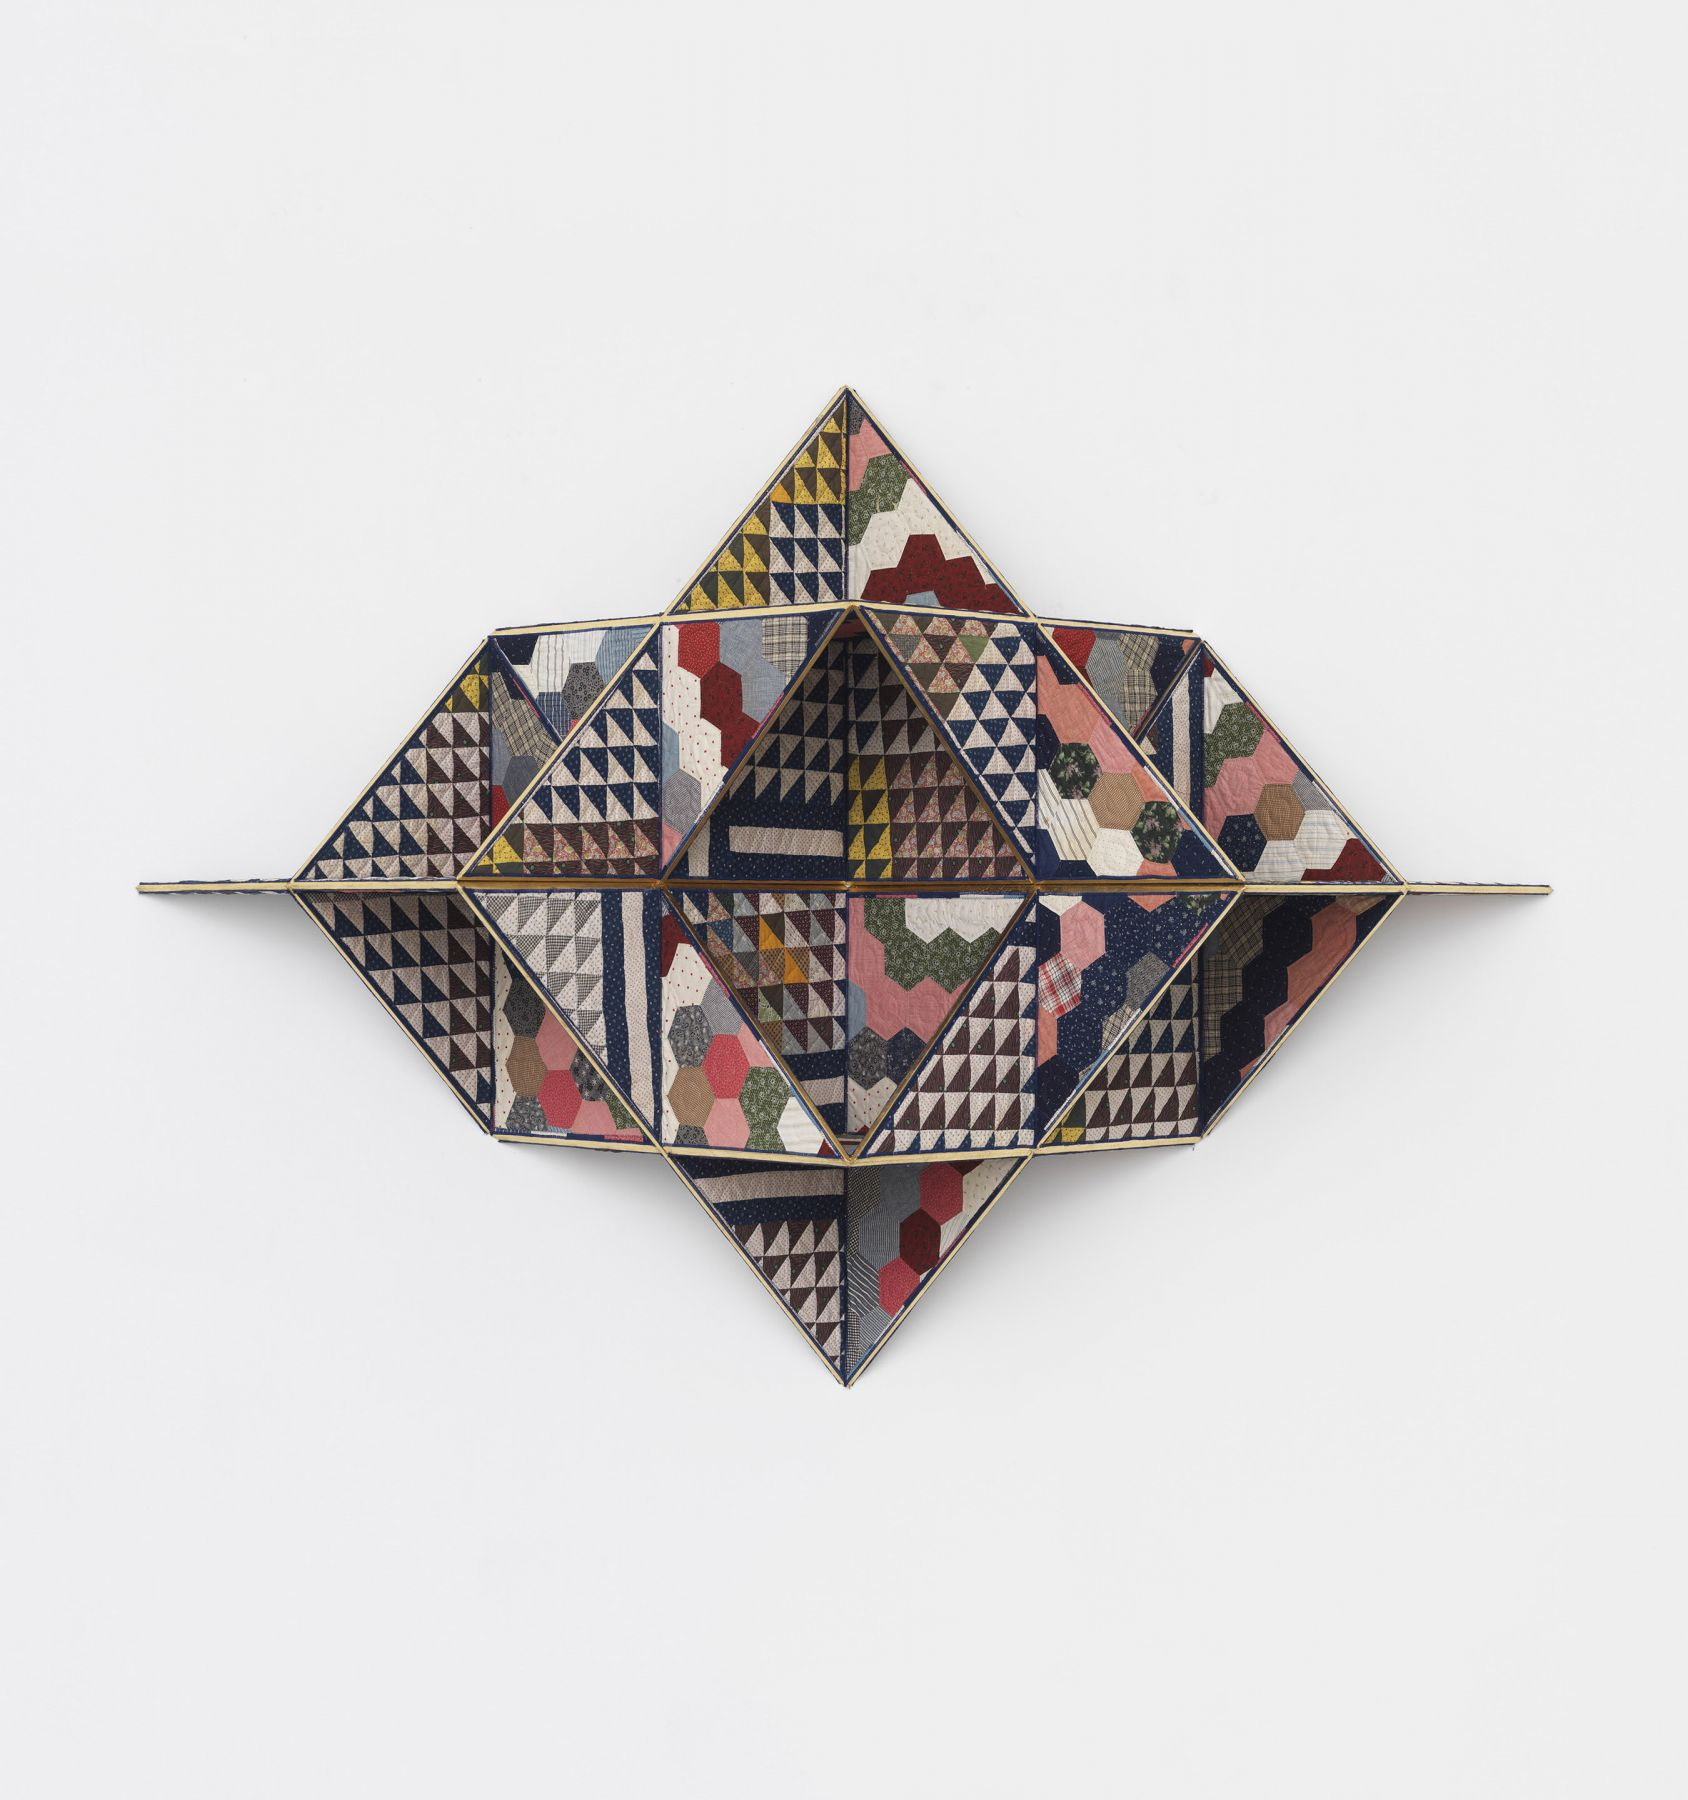 a geometric sculpture made of quilts by the artist Sanford Biggers